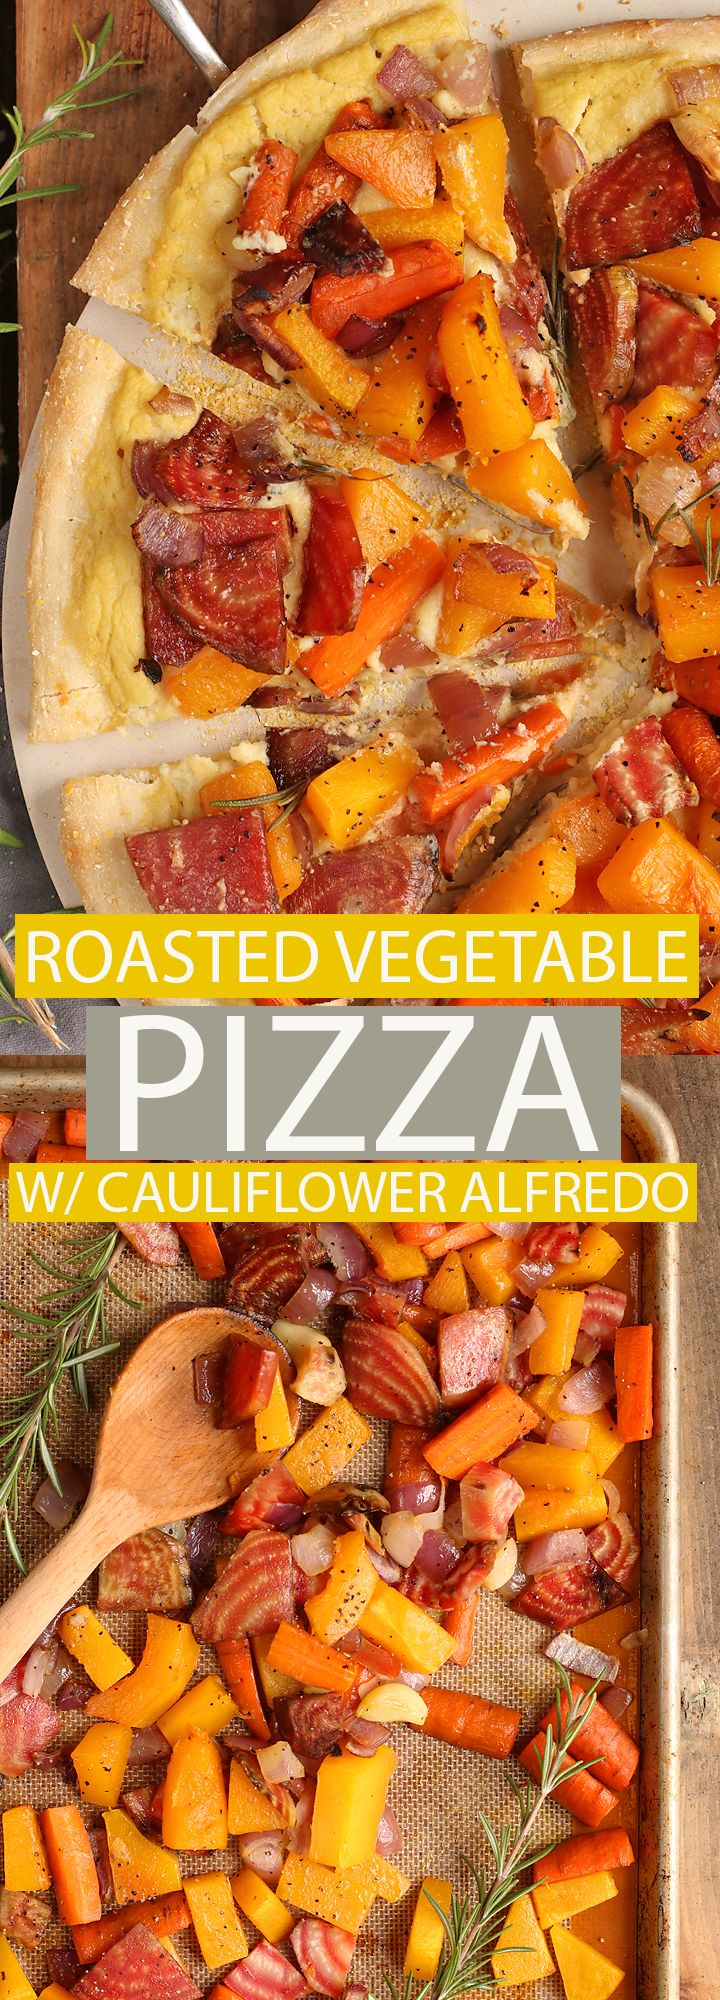 Vegan Fall Roasted Vegetable Pizza with Cauliflower Alfredo Sauce. Perfect for entertaining close friends